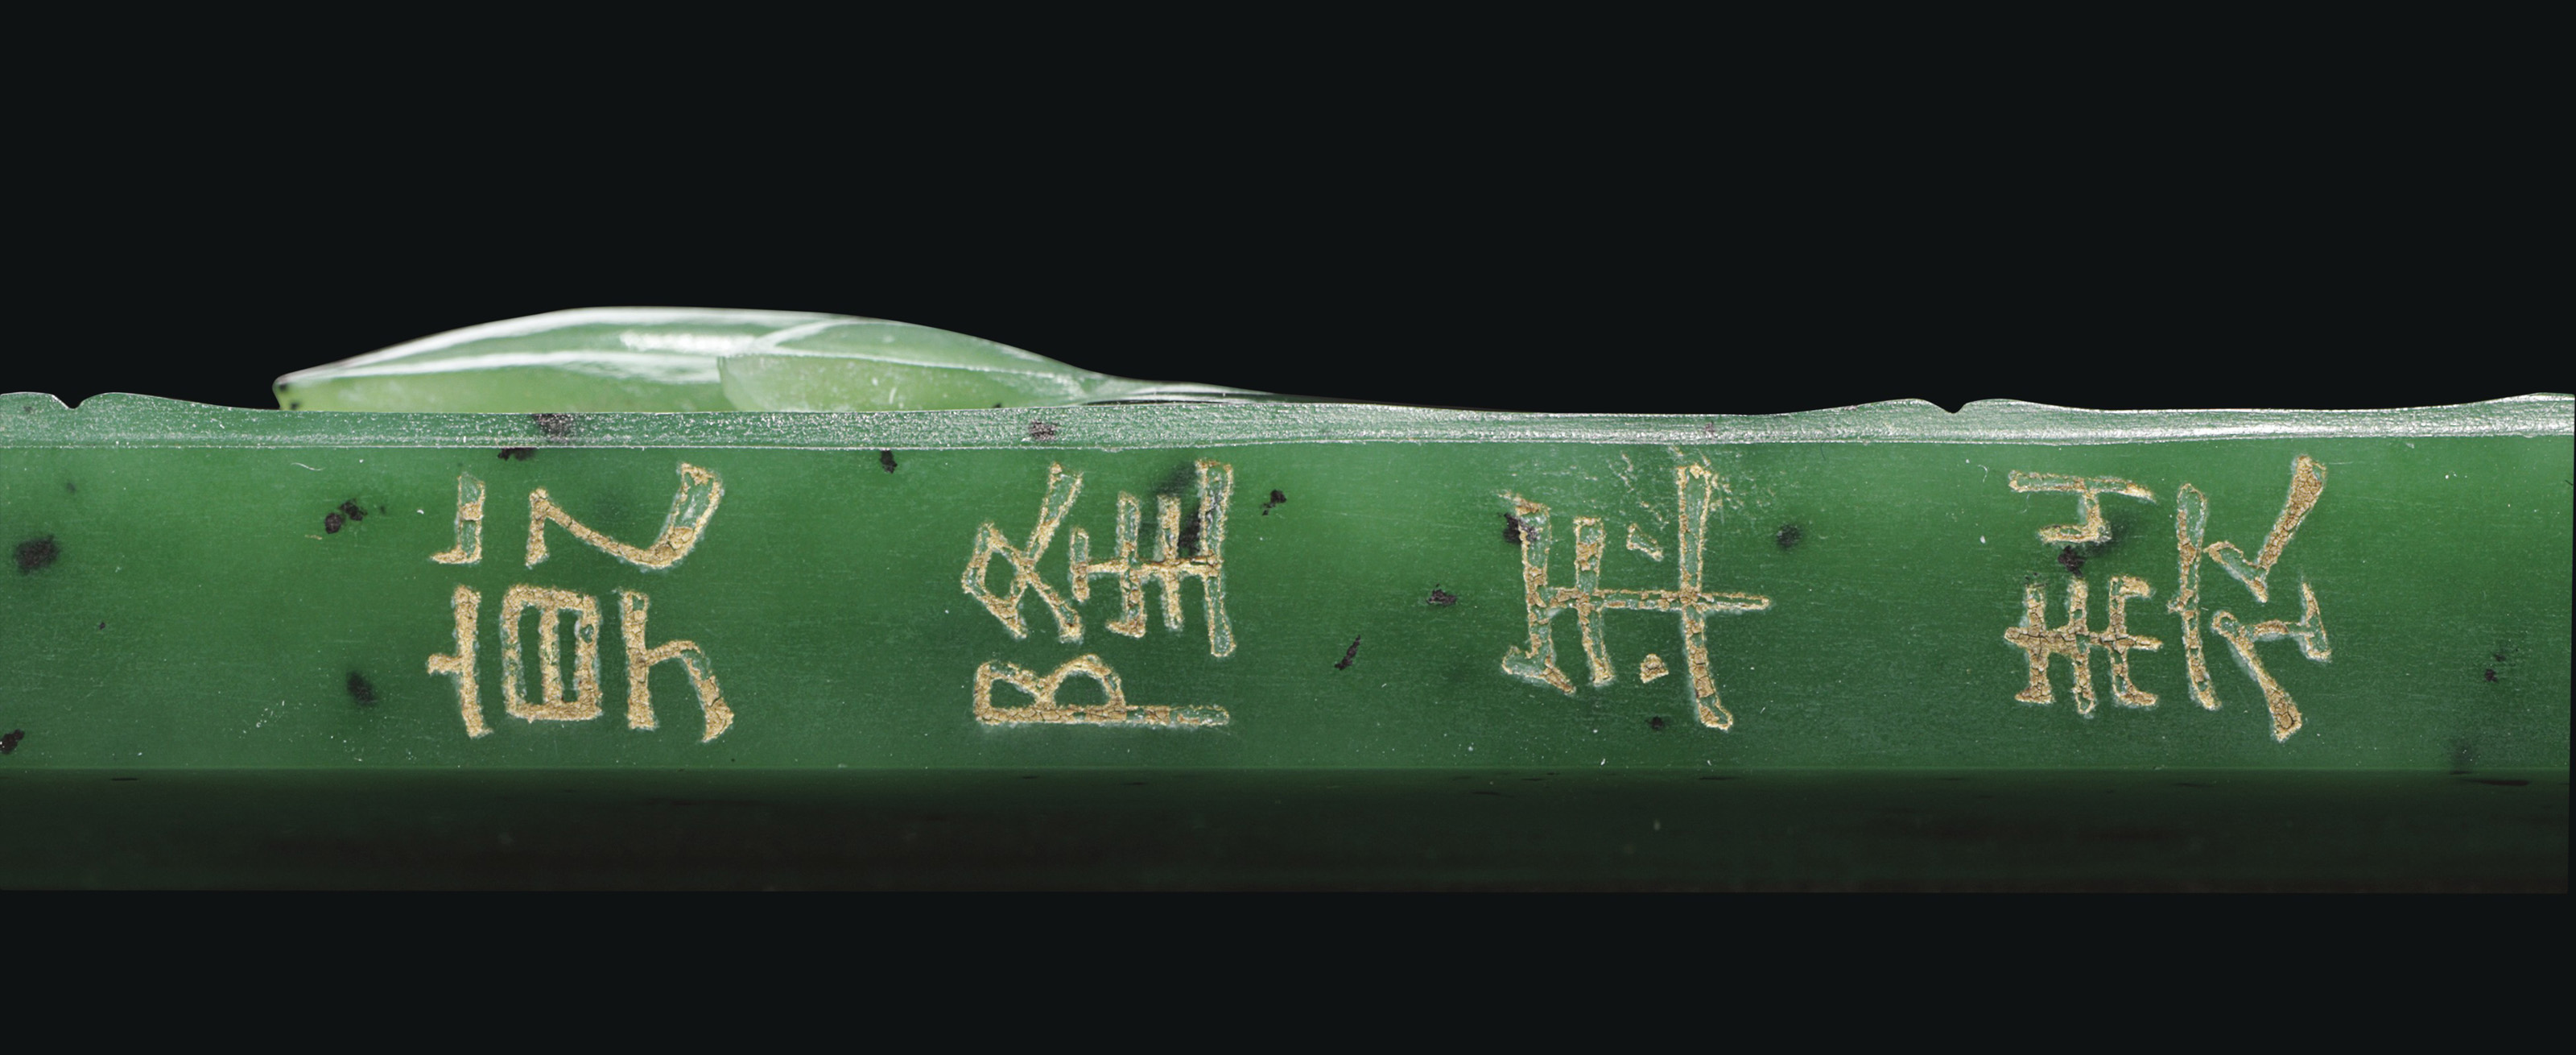 A MAGNIFICENT SET OF CHINESE SPINACH-GREEN JADE PLAQUES EMBLEMATIC OF THE FOUR SEASONS